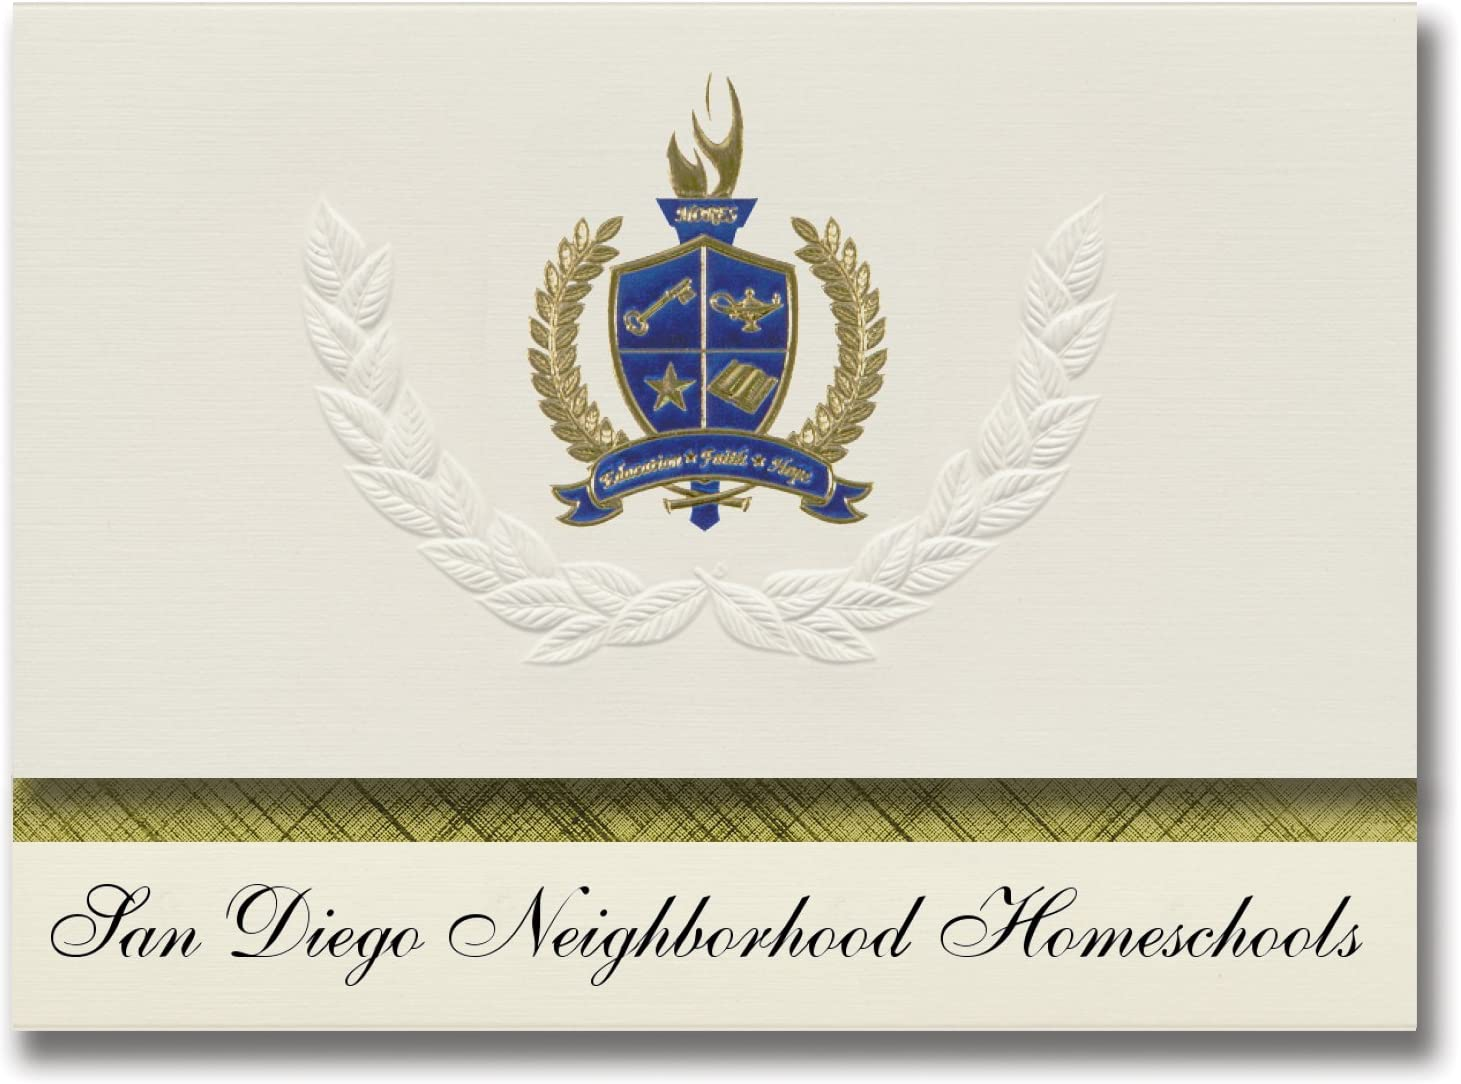 Signature Announcements San Diego Neighborhood Homeschools (Oceanside, CA) Graduation Announcements, Presidential Basic Pack 25 with Gold & Blue Metallic Foil seal